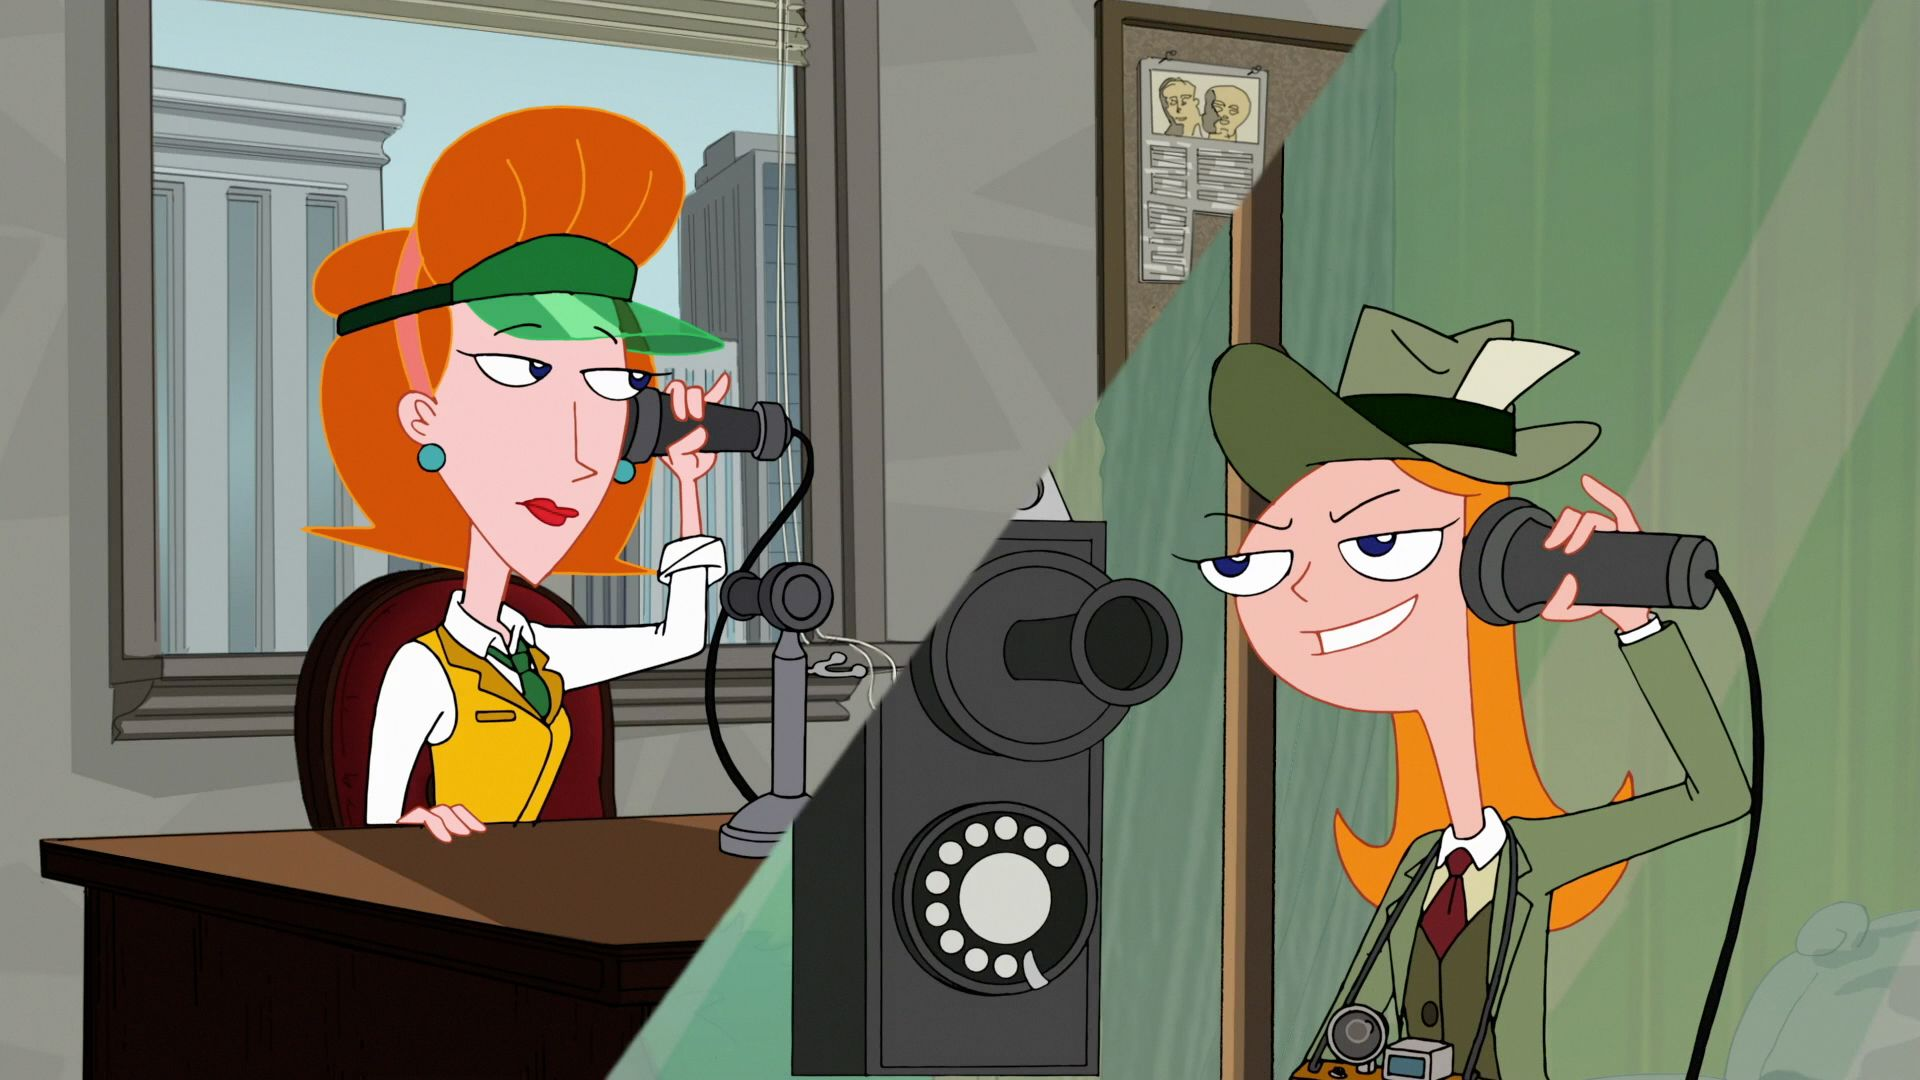 Phineas And Ferb Wikia hd desktop wallpaper